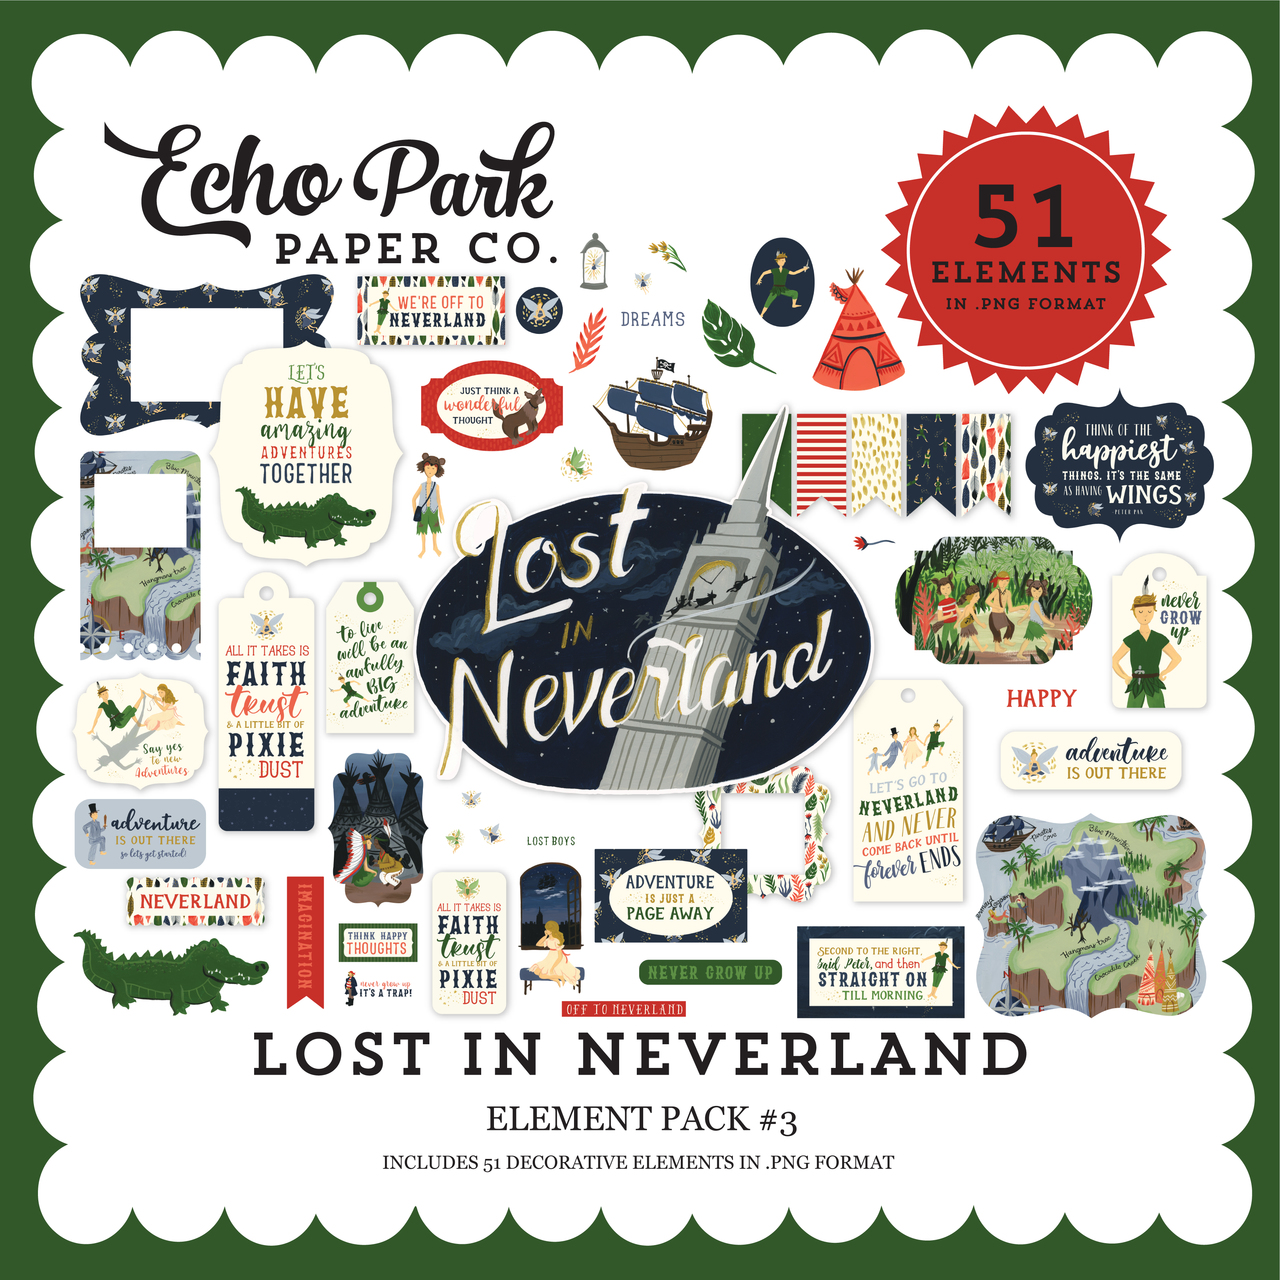 Lost In Neverland Element Pack #3